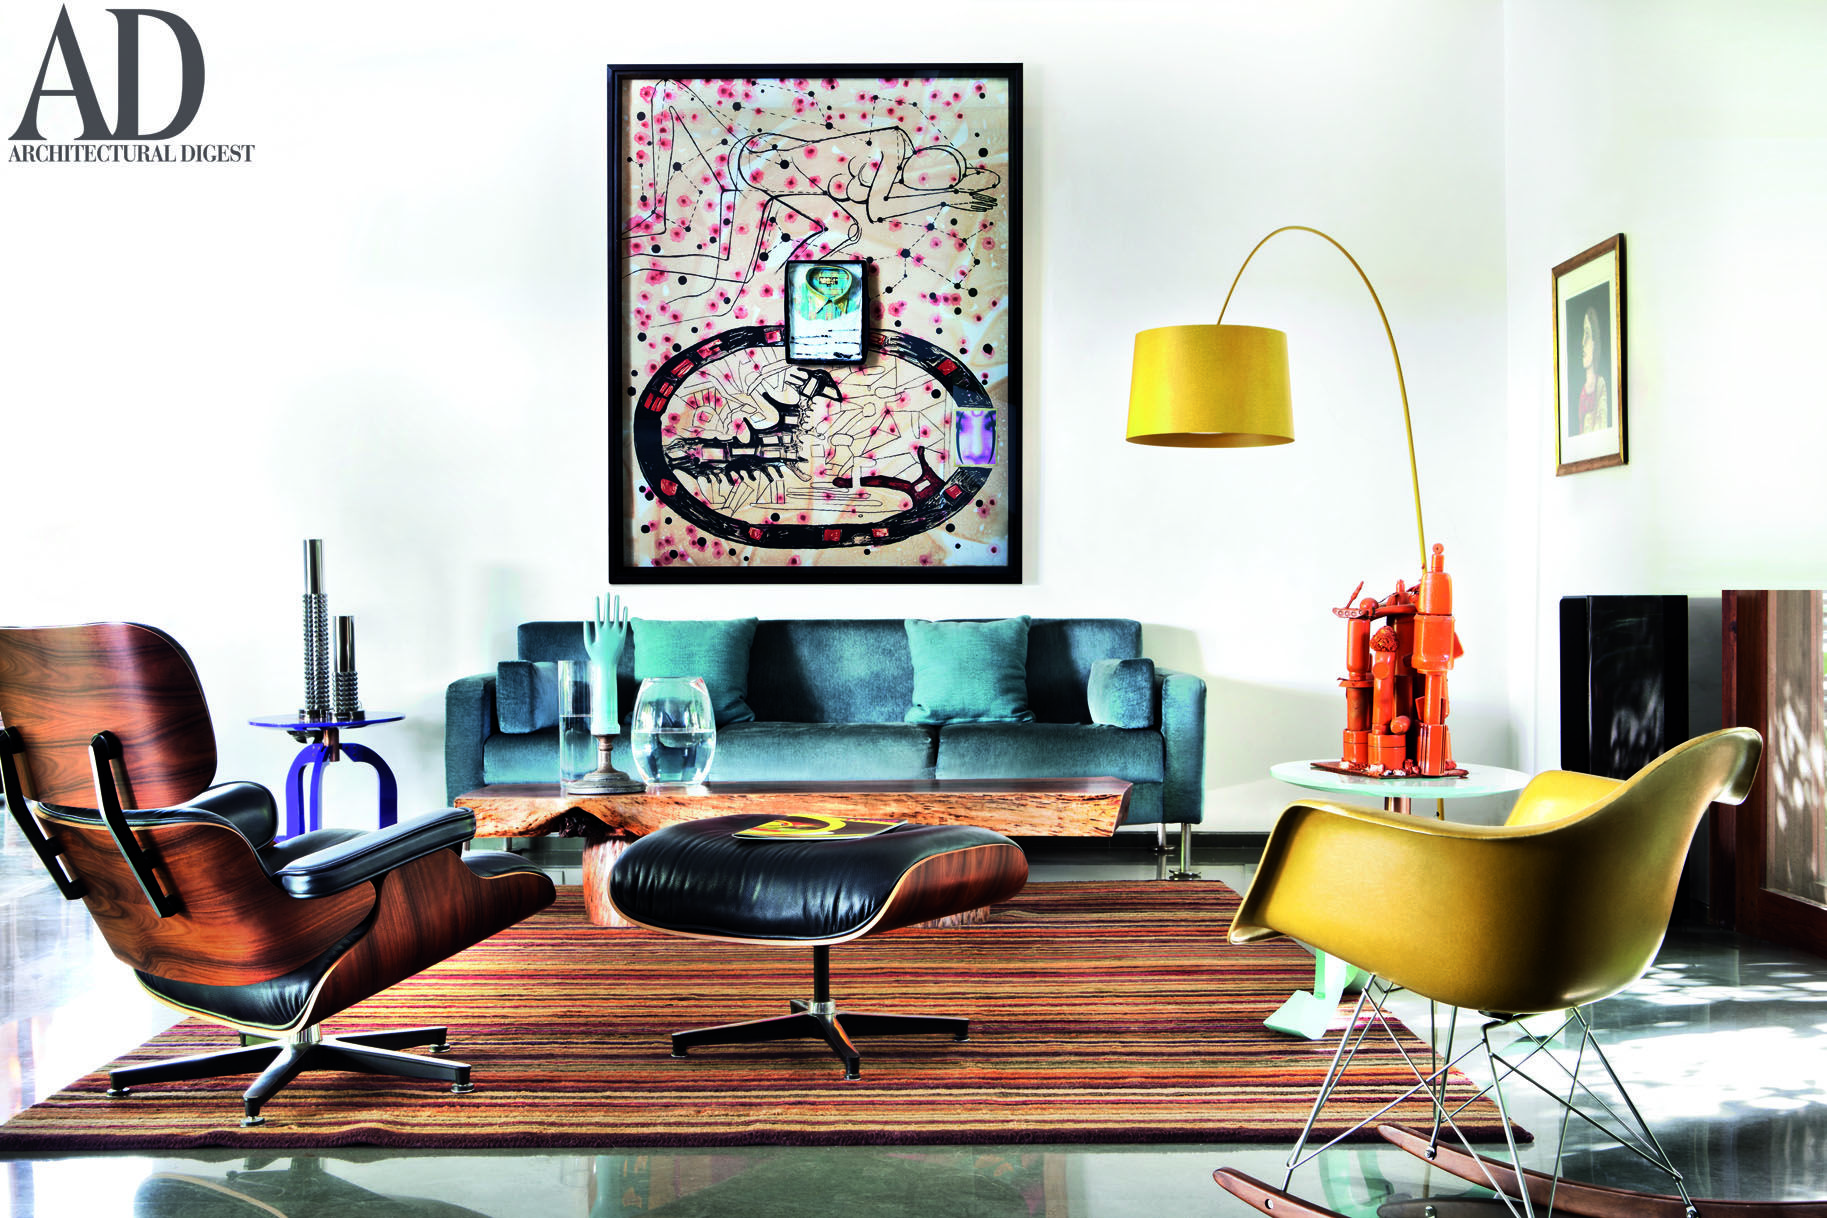 The living room of the Bengaluru home of architect Sandeep